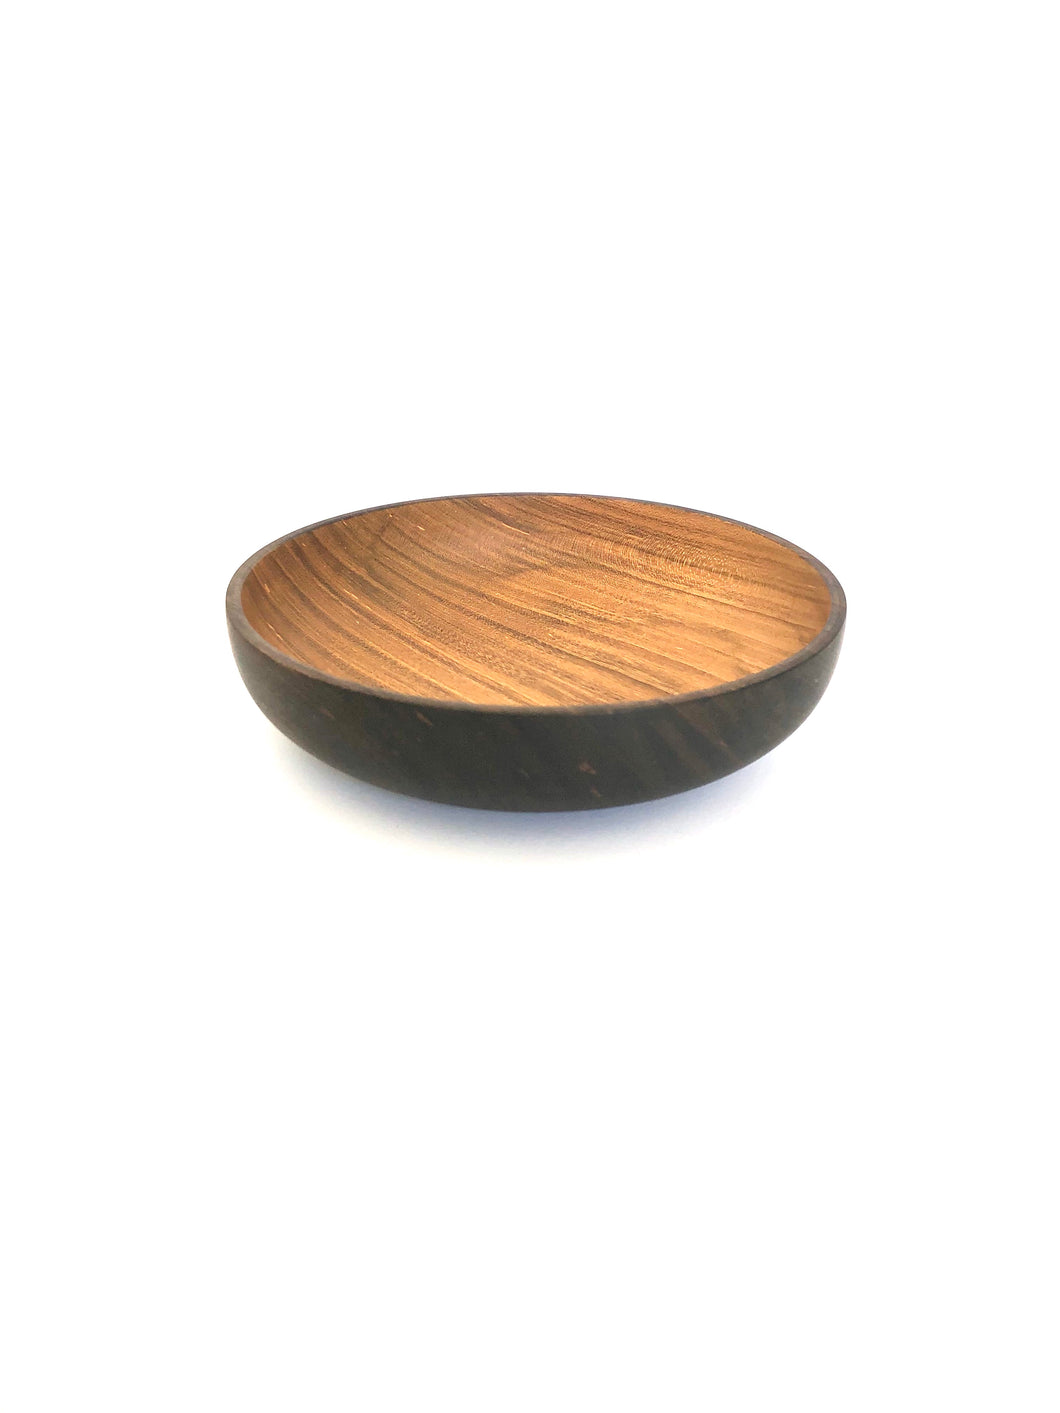 Japanese Handcrafted Wooden Iron Dyed Dual Coloured Small Bowl Cherry -  桜外側鉄染め小鉢 15cm